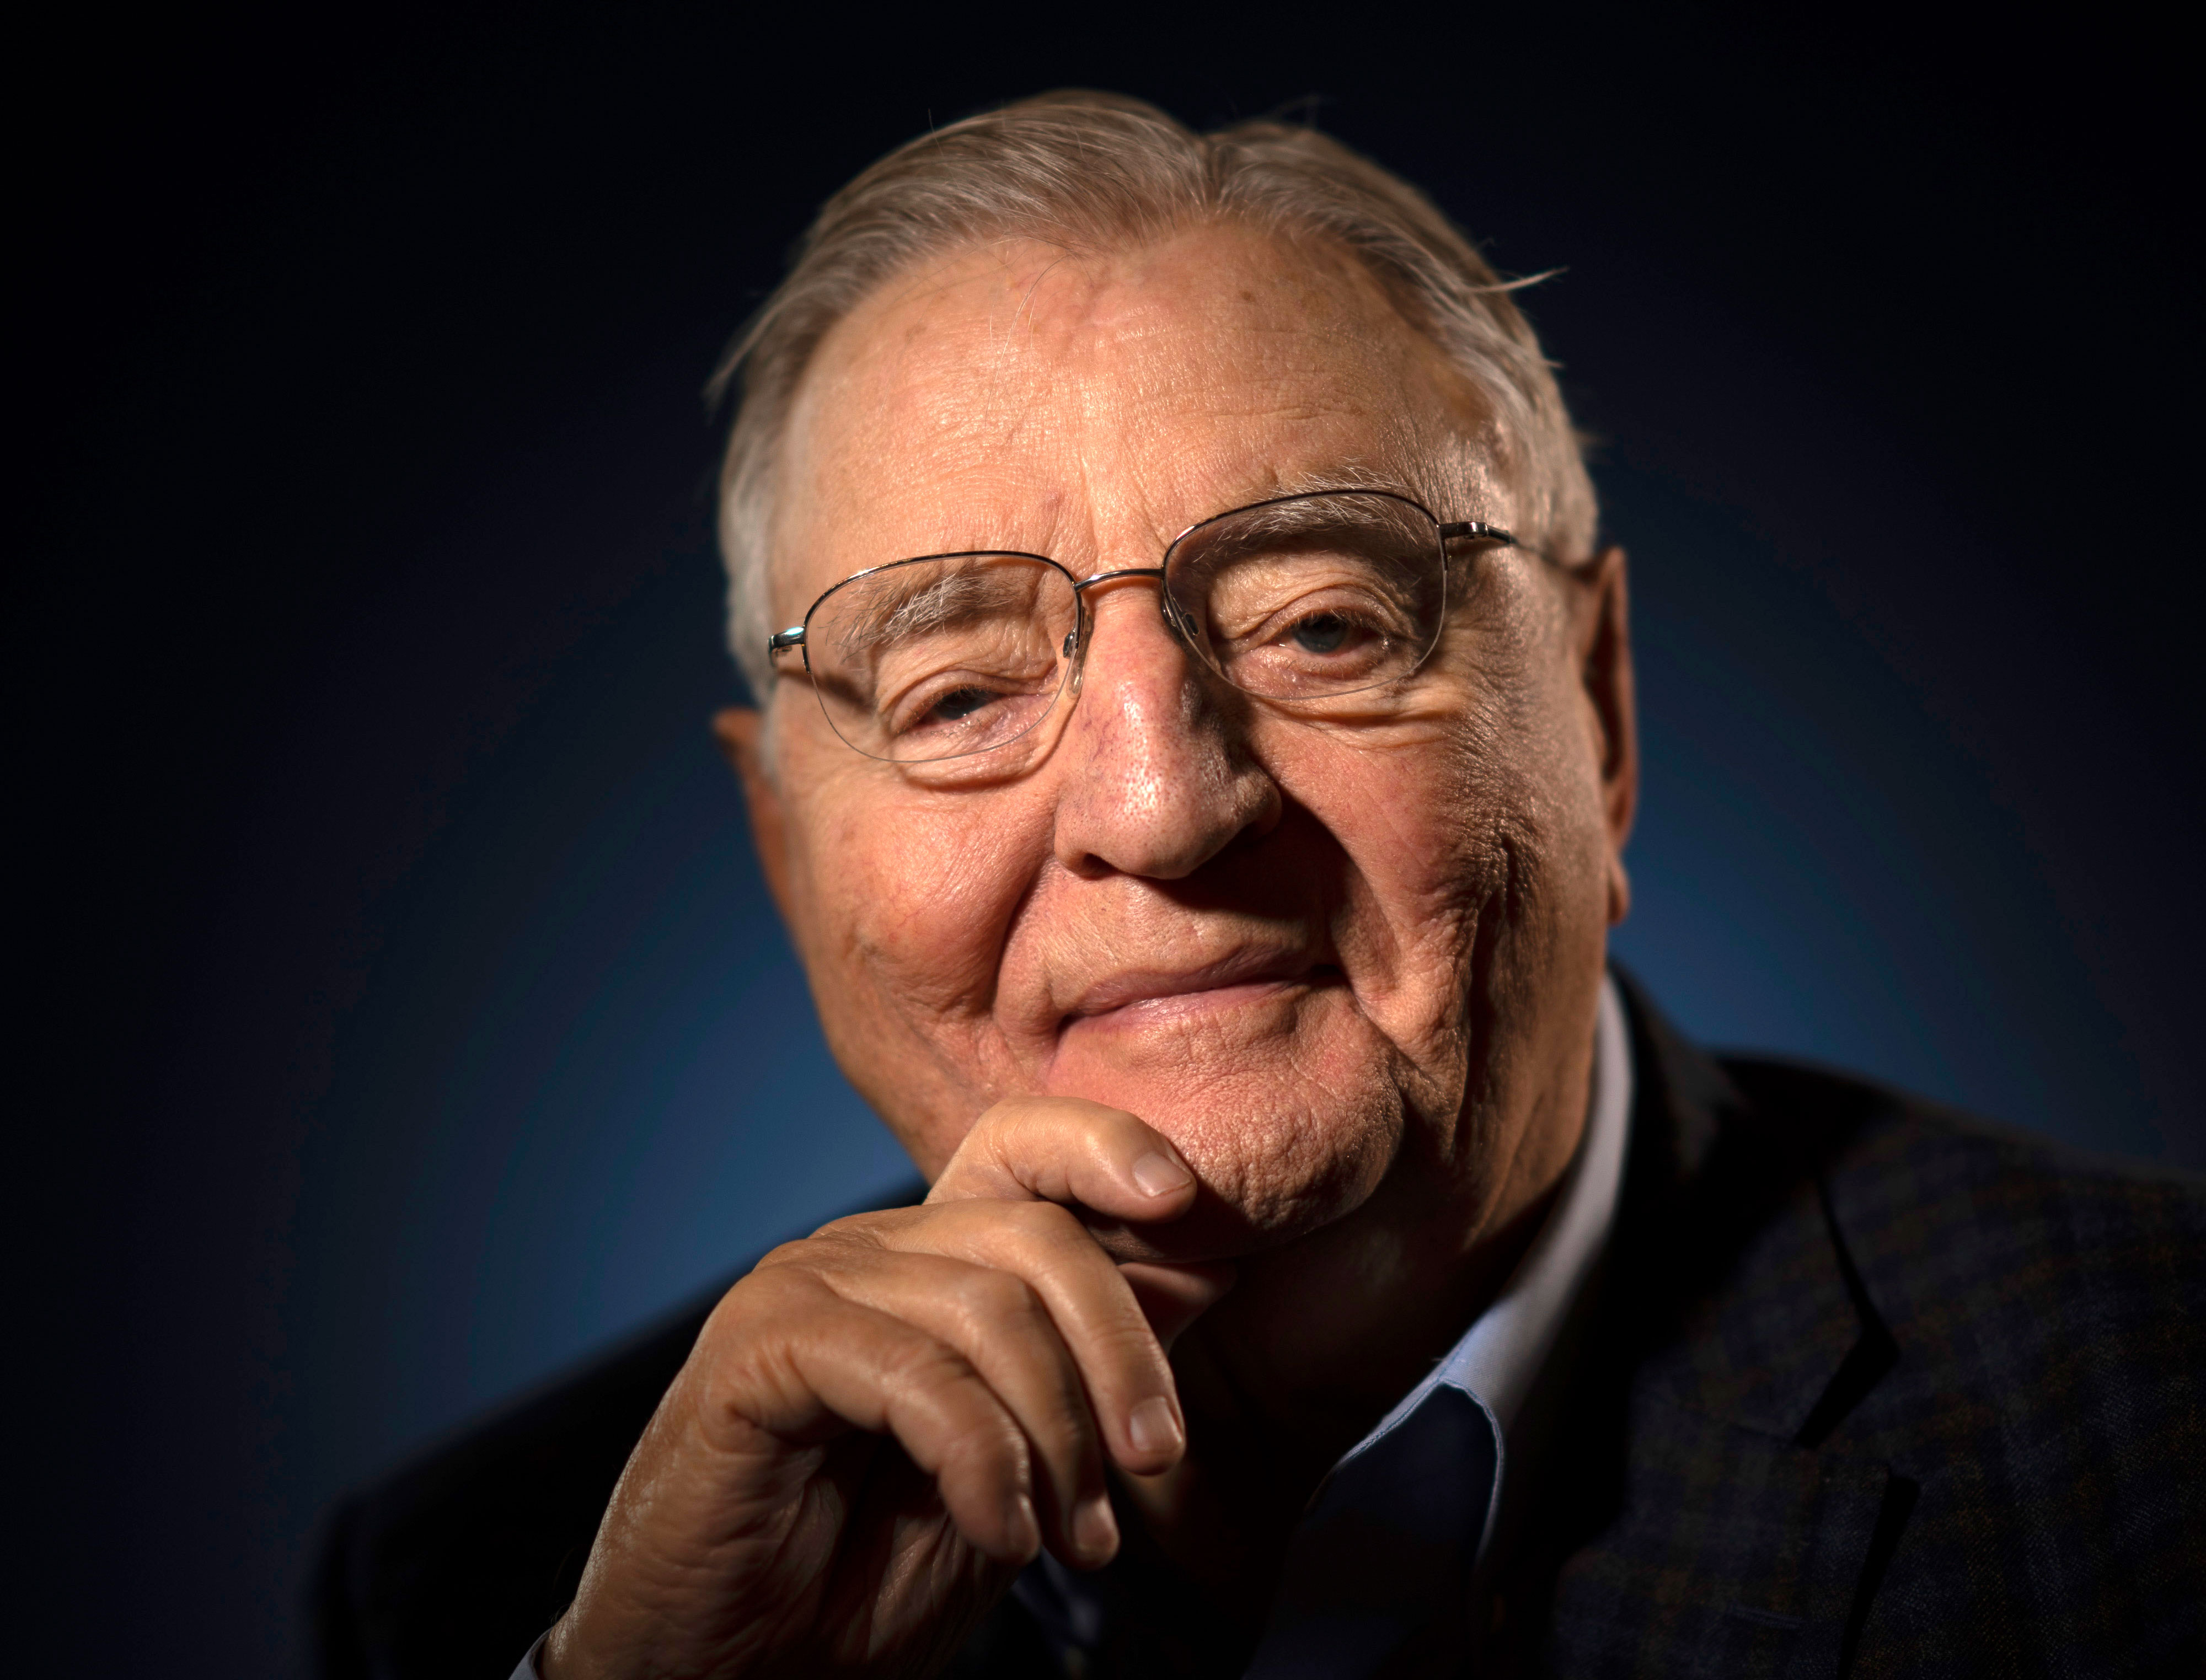 Walter 'Fritz' Mondale, former vice president under Jimmy Carter, dead at 93